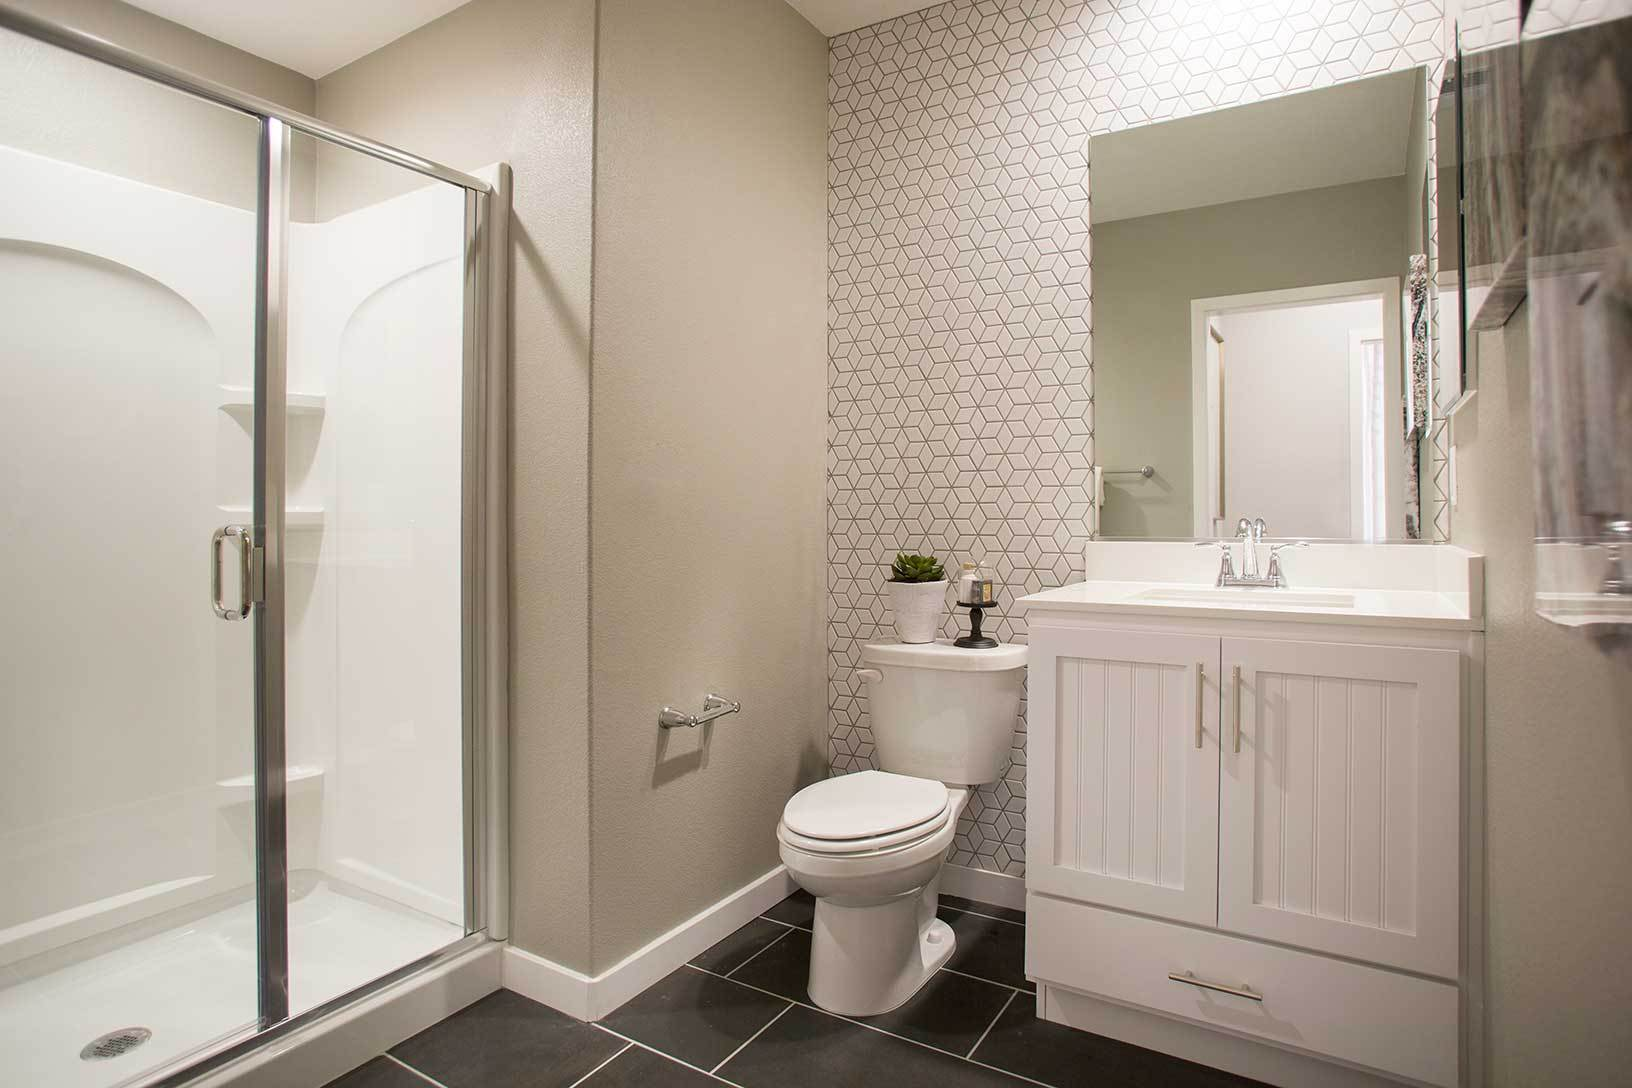 Bathroom featured in the Residence 3 By TRI Pointe Homes in San Jose, CA